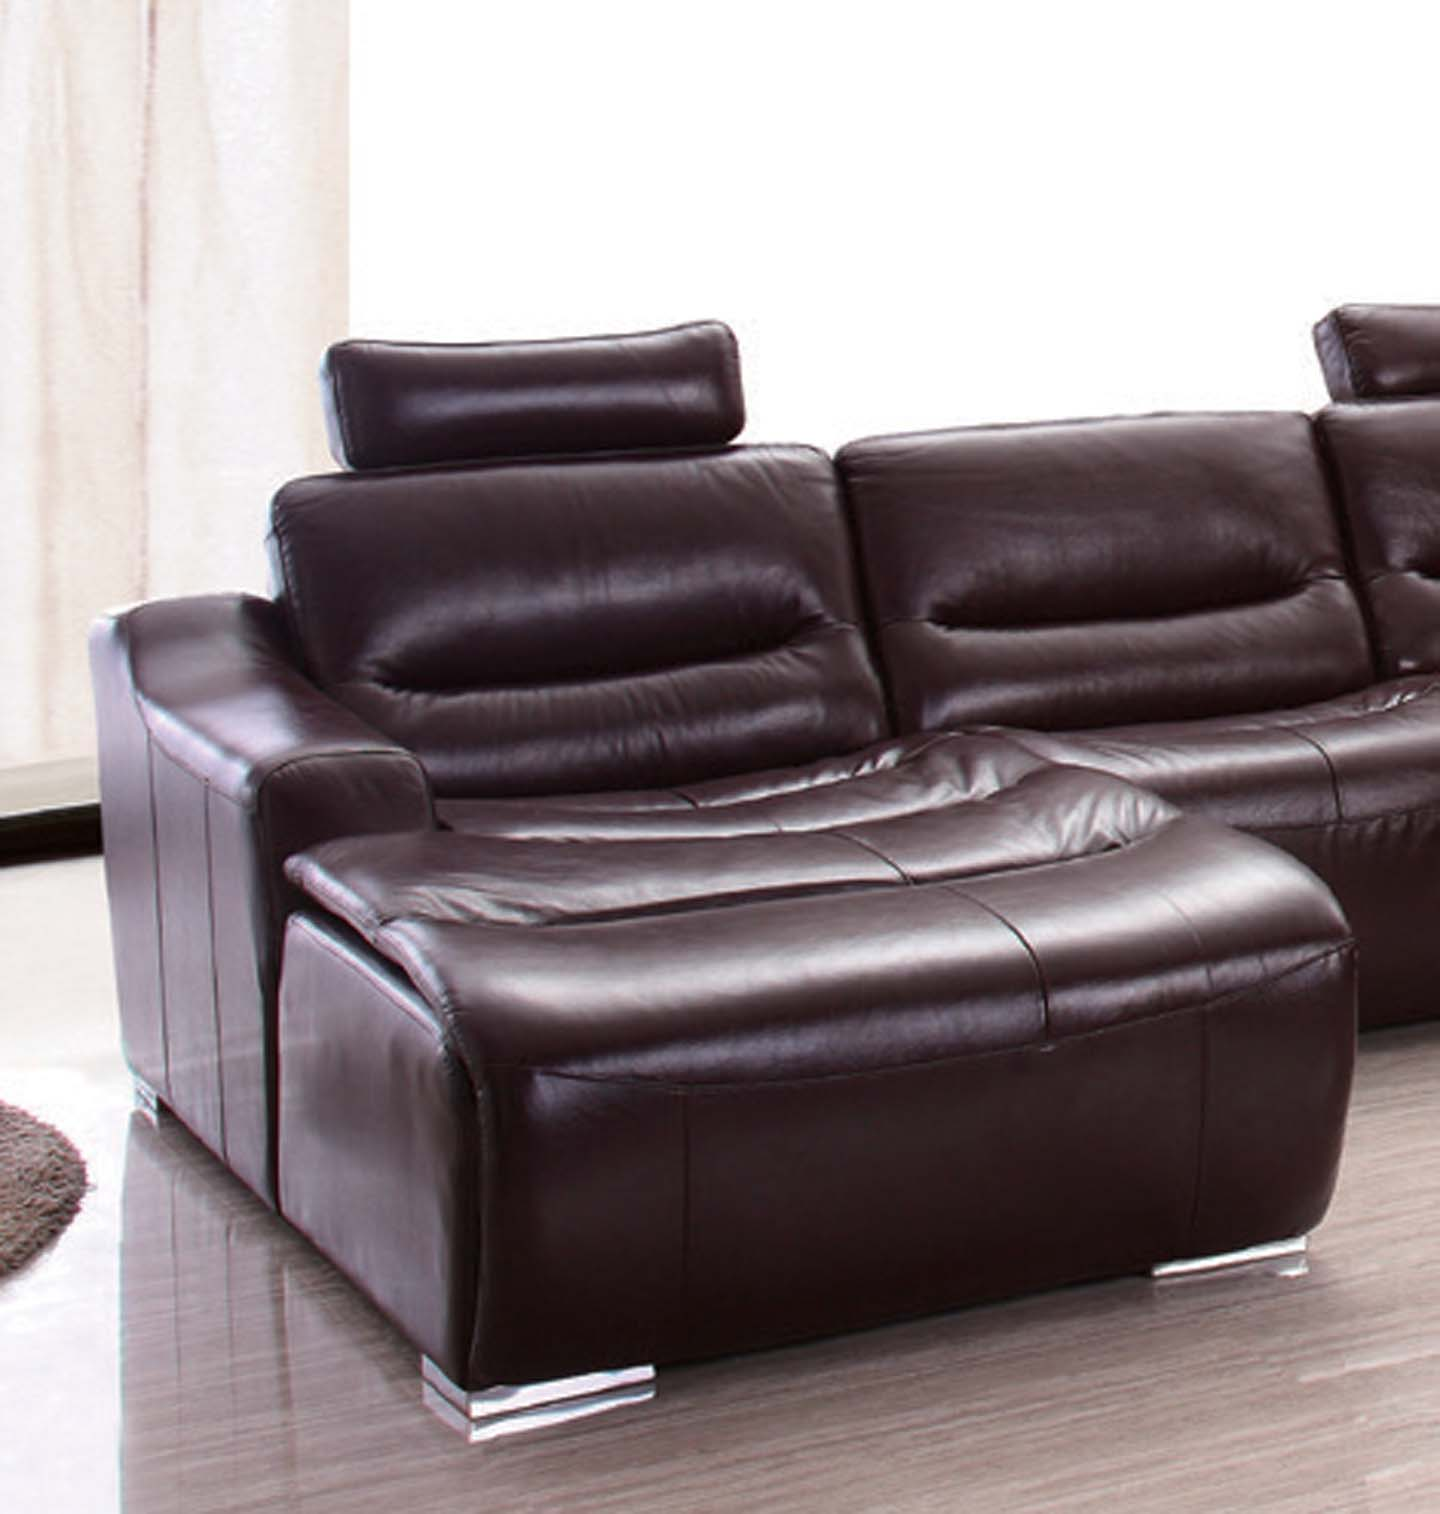 Sectional Sofas With Recliners: 2144 Sectional W/Recliner, Recliners, Living Room Furniture